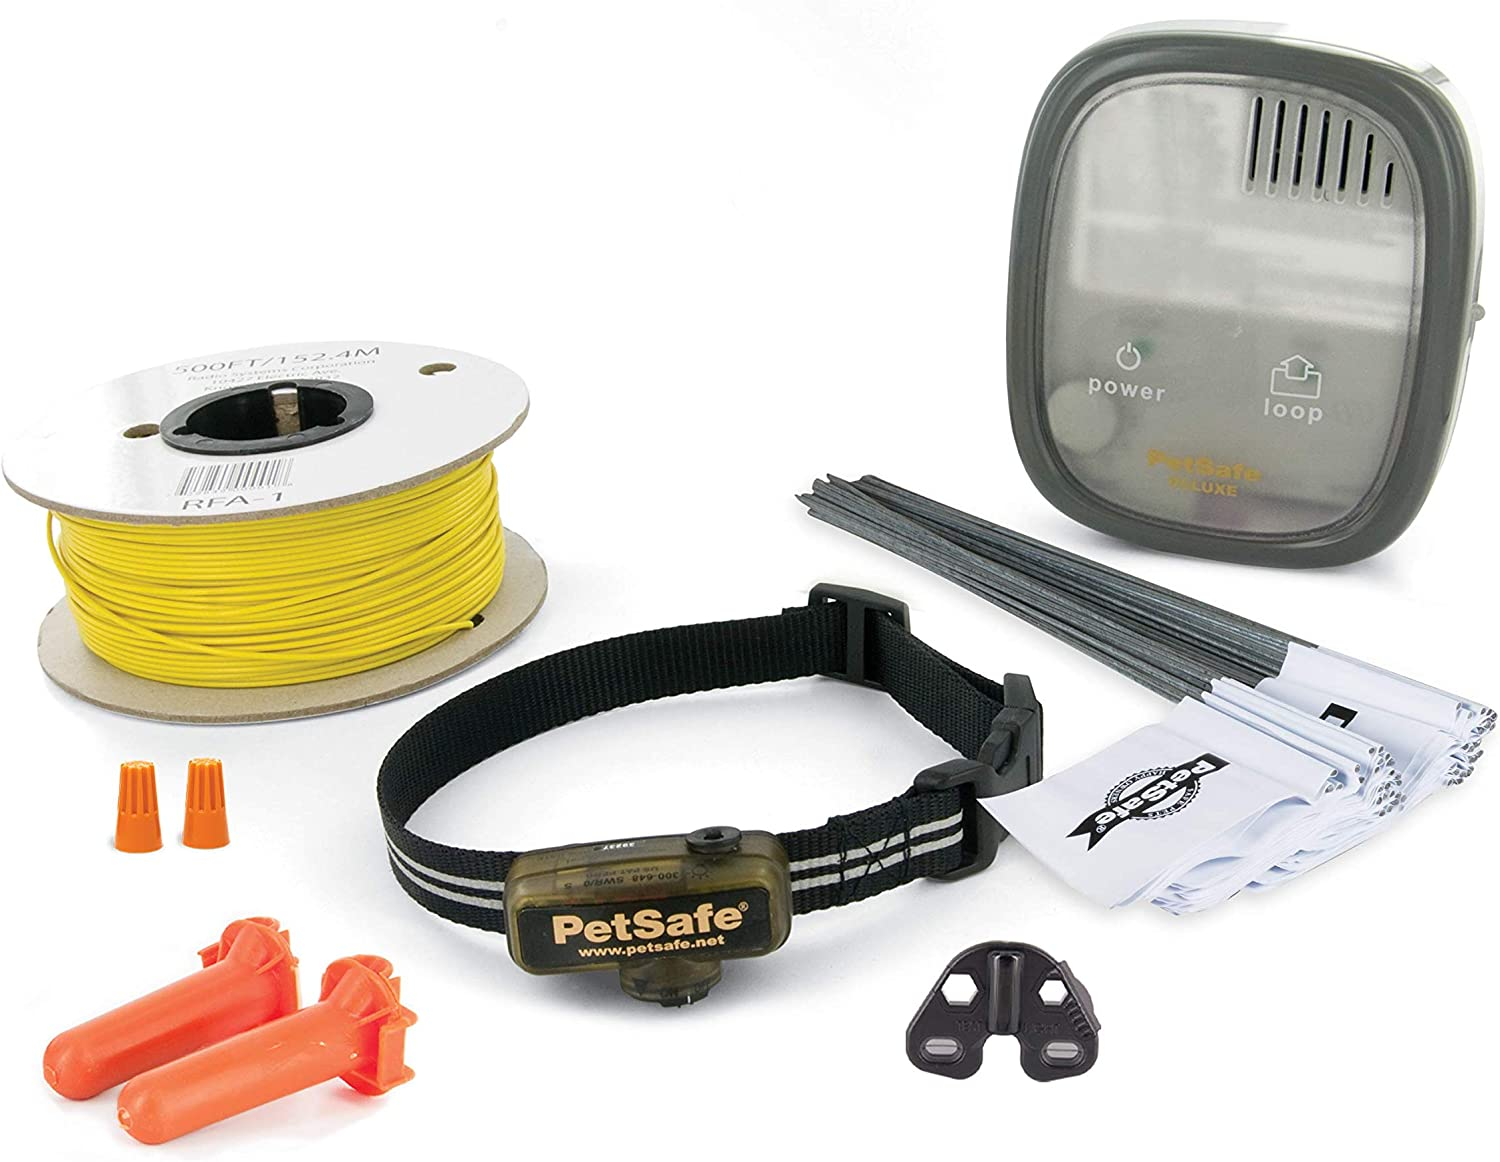 PetSafe Elite Little Dog In-Ground Fence and Waterproof Receiver Collar